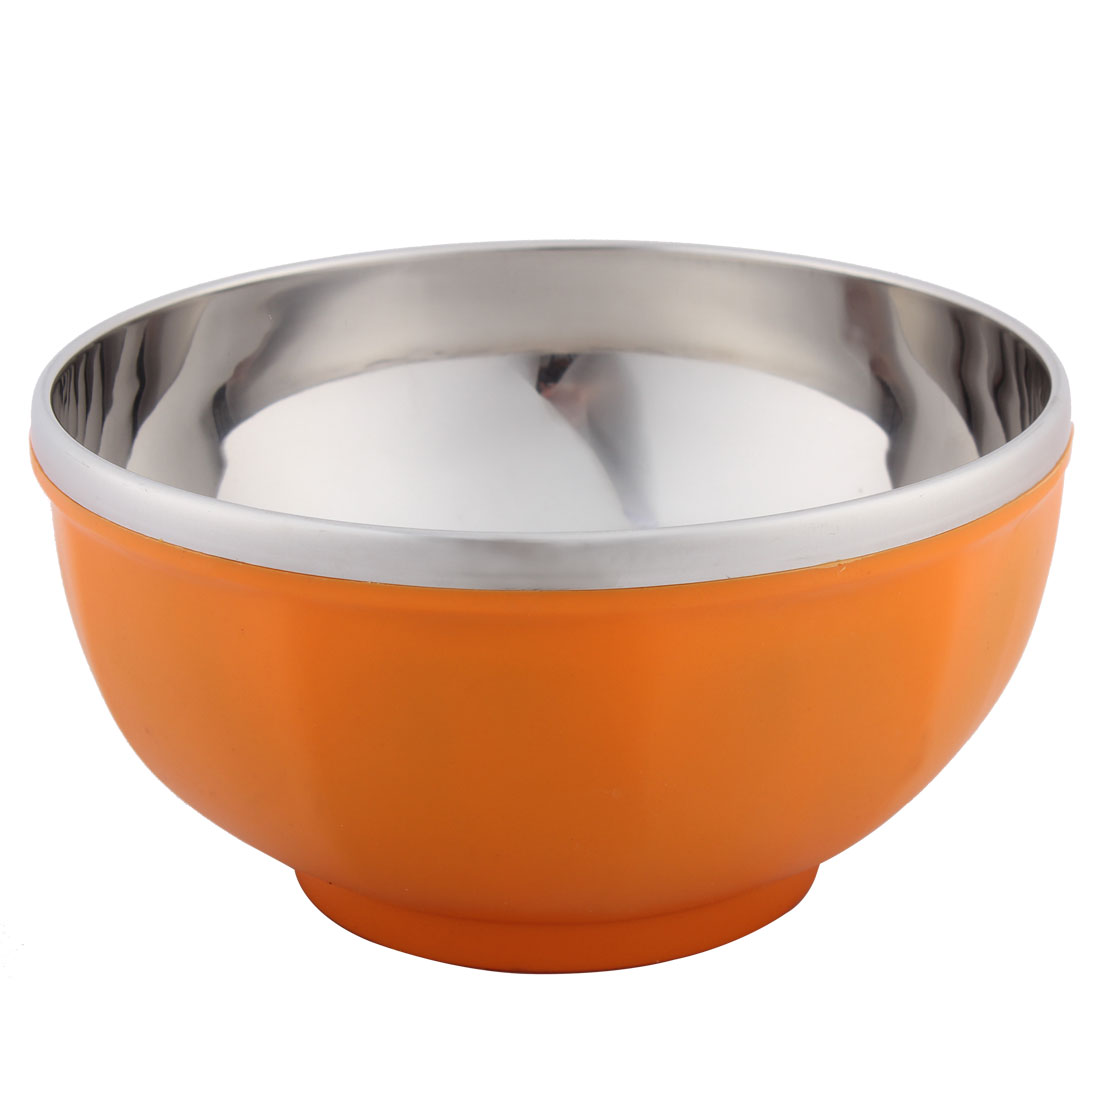 Kitchenware Round Shaped Stainless Steel Dinner Rice Bowl Orange 16.5cm Diameter